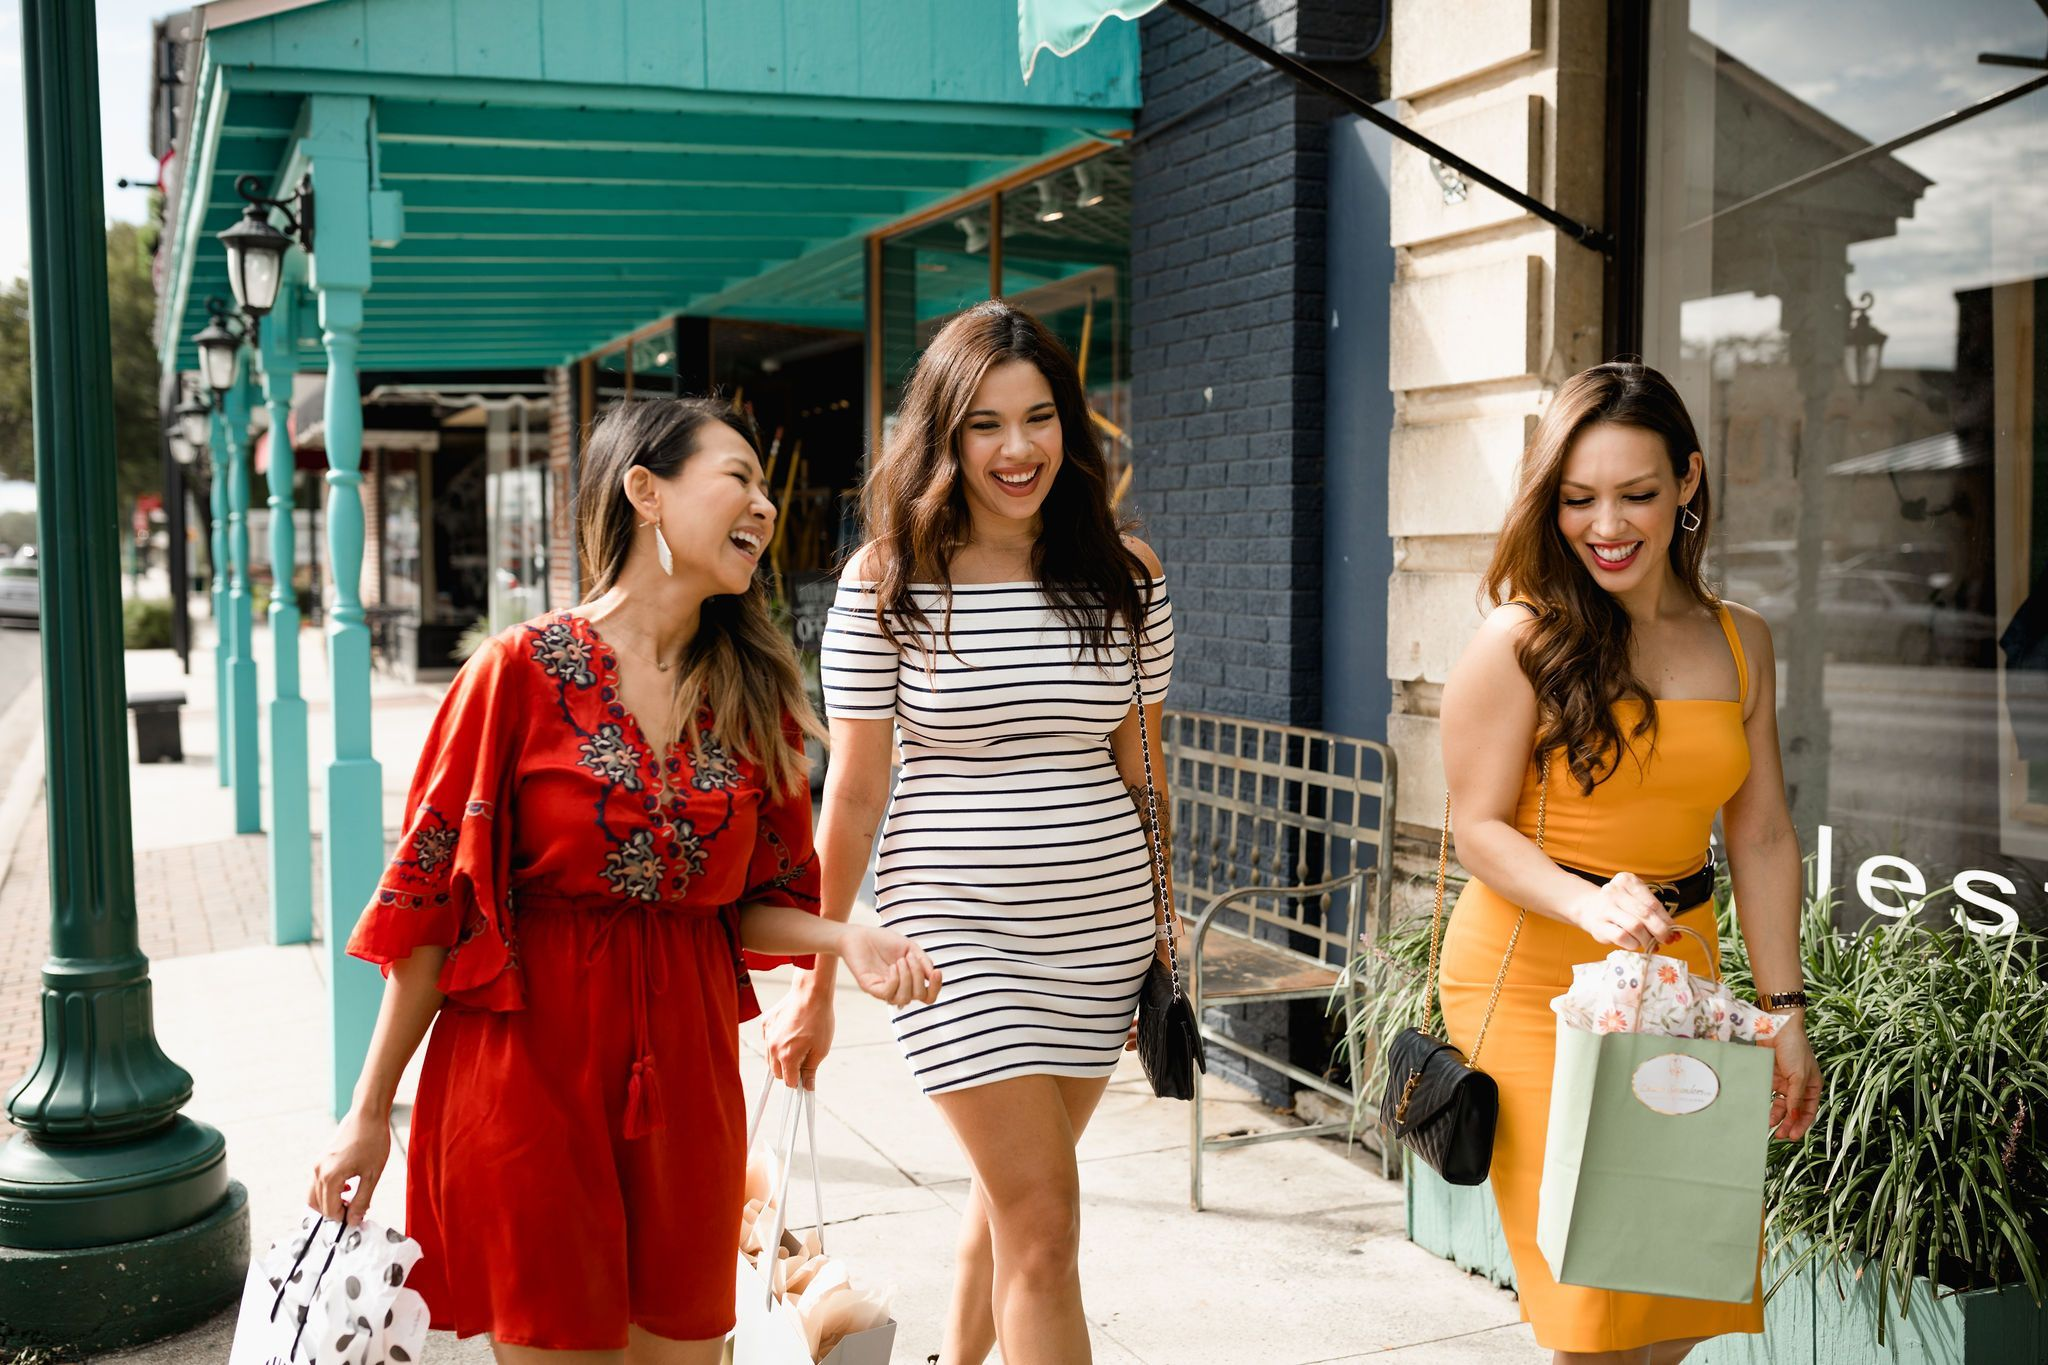 8 Ways To Do Boerne This Memorial Day Weekend Make Sure To Check With Each Location For Details On How They Are Boerne Kendall County Short Sleeve Dresses